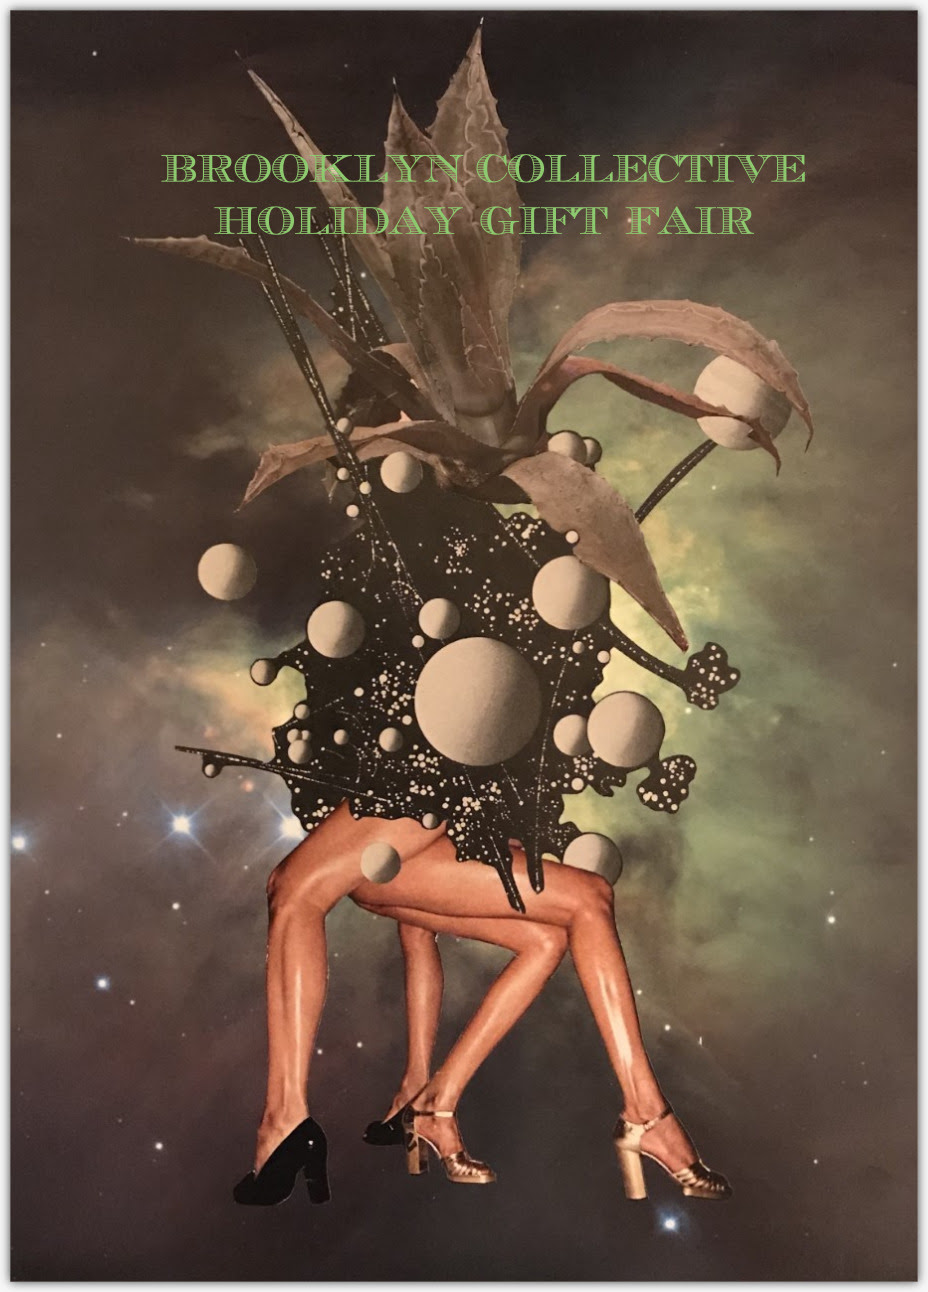 brooklyn collective holiday gift fair.jpg